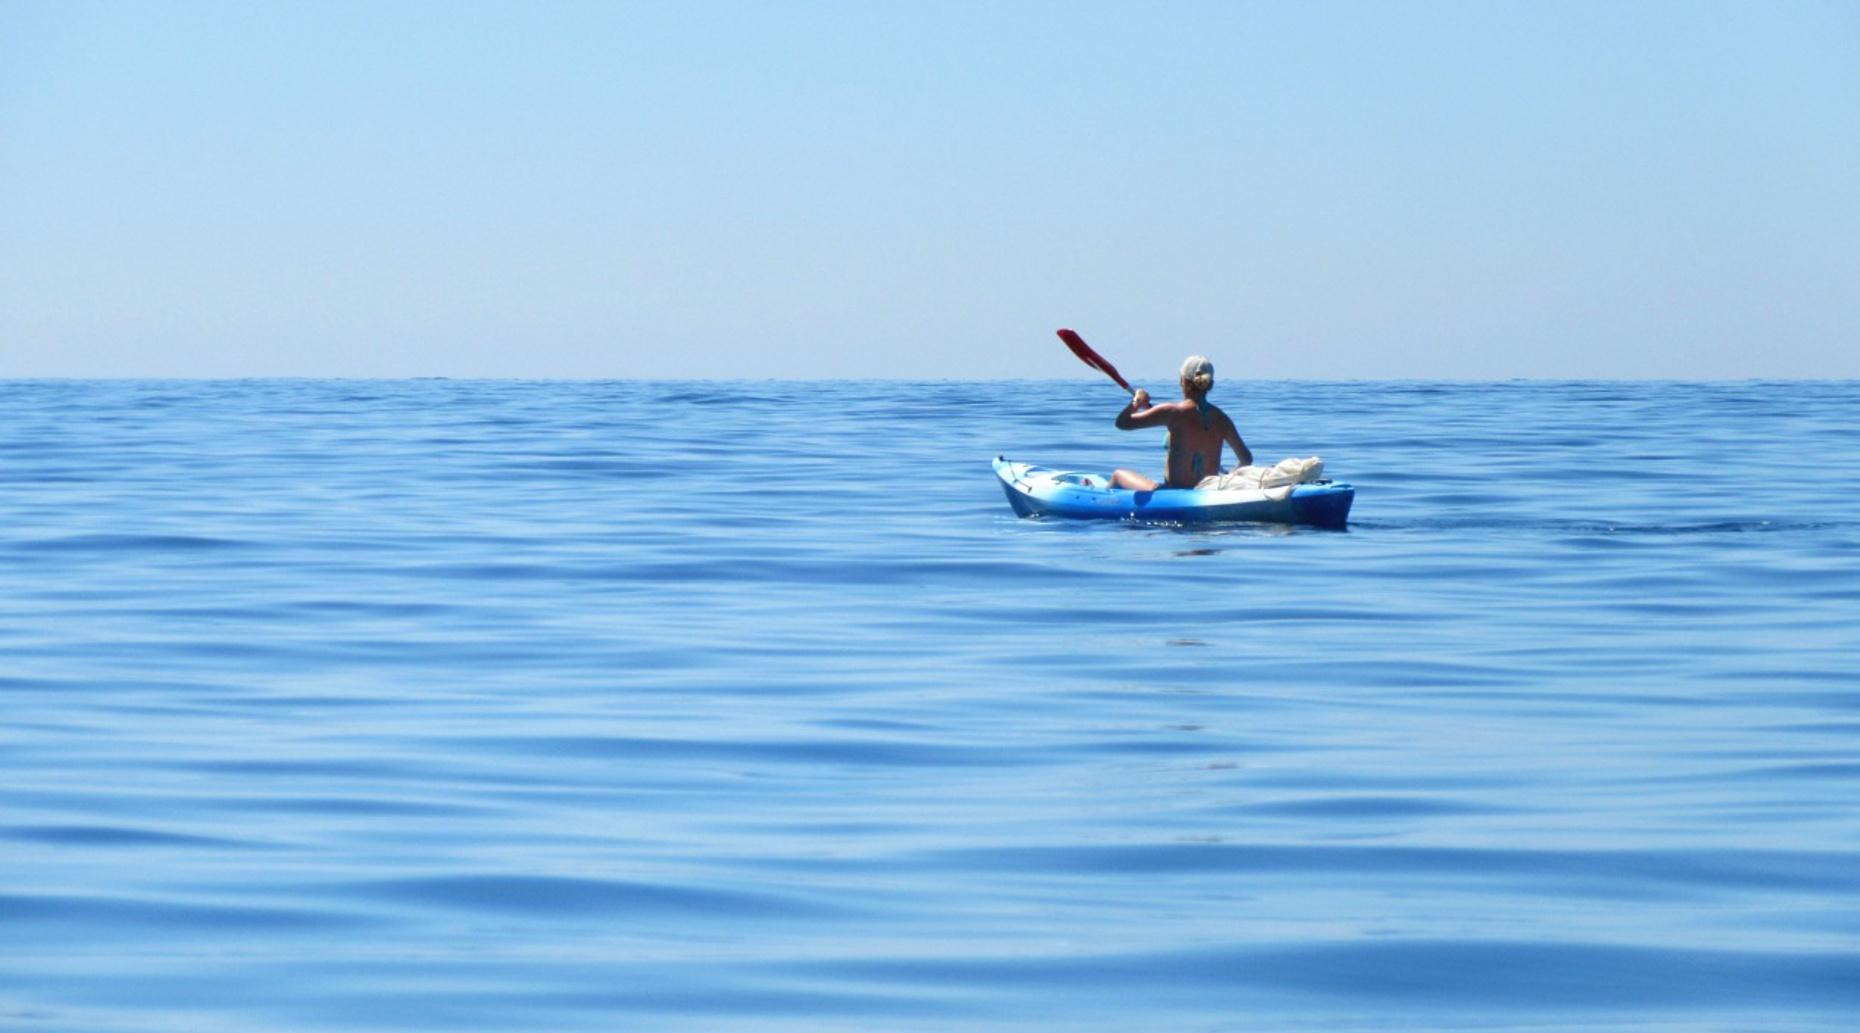 Full-day Rental (8 Hours - Kayak and Paddleboard)